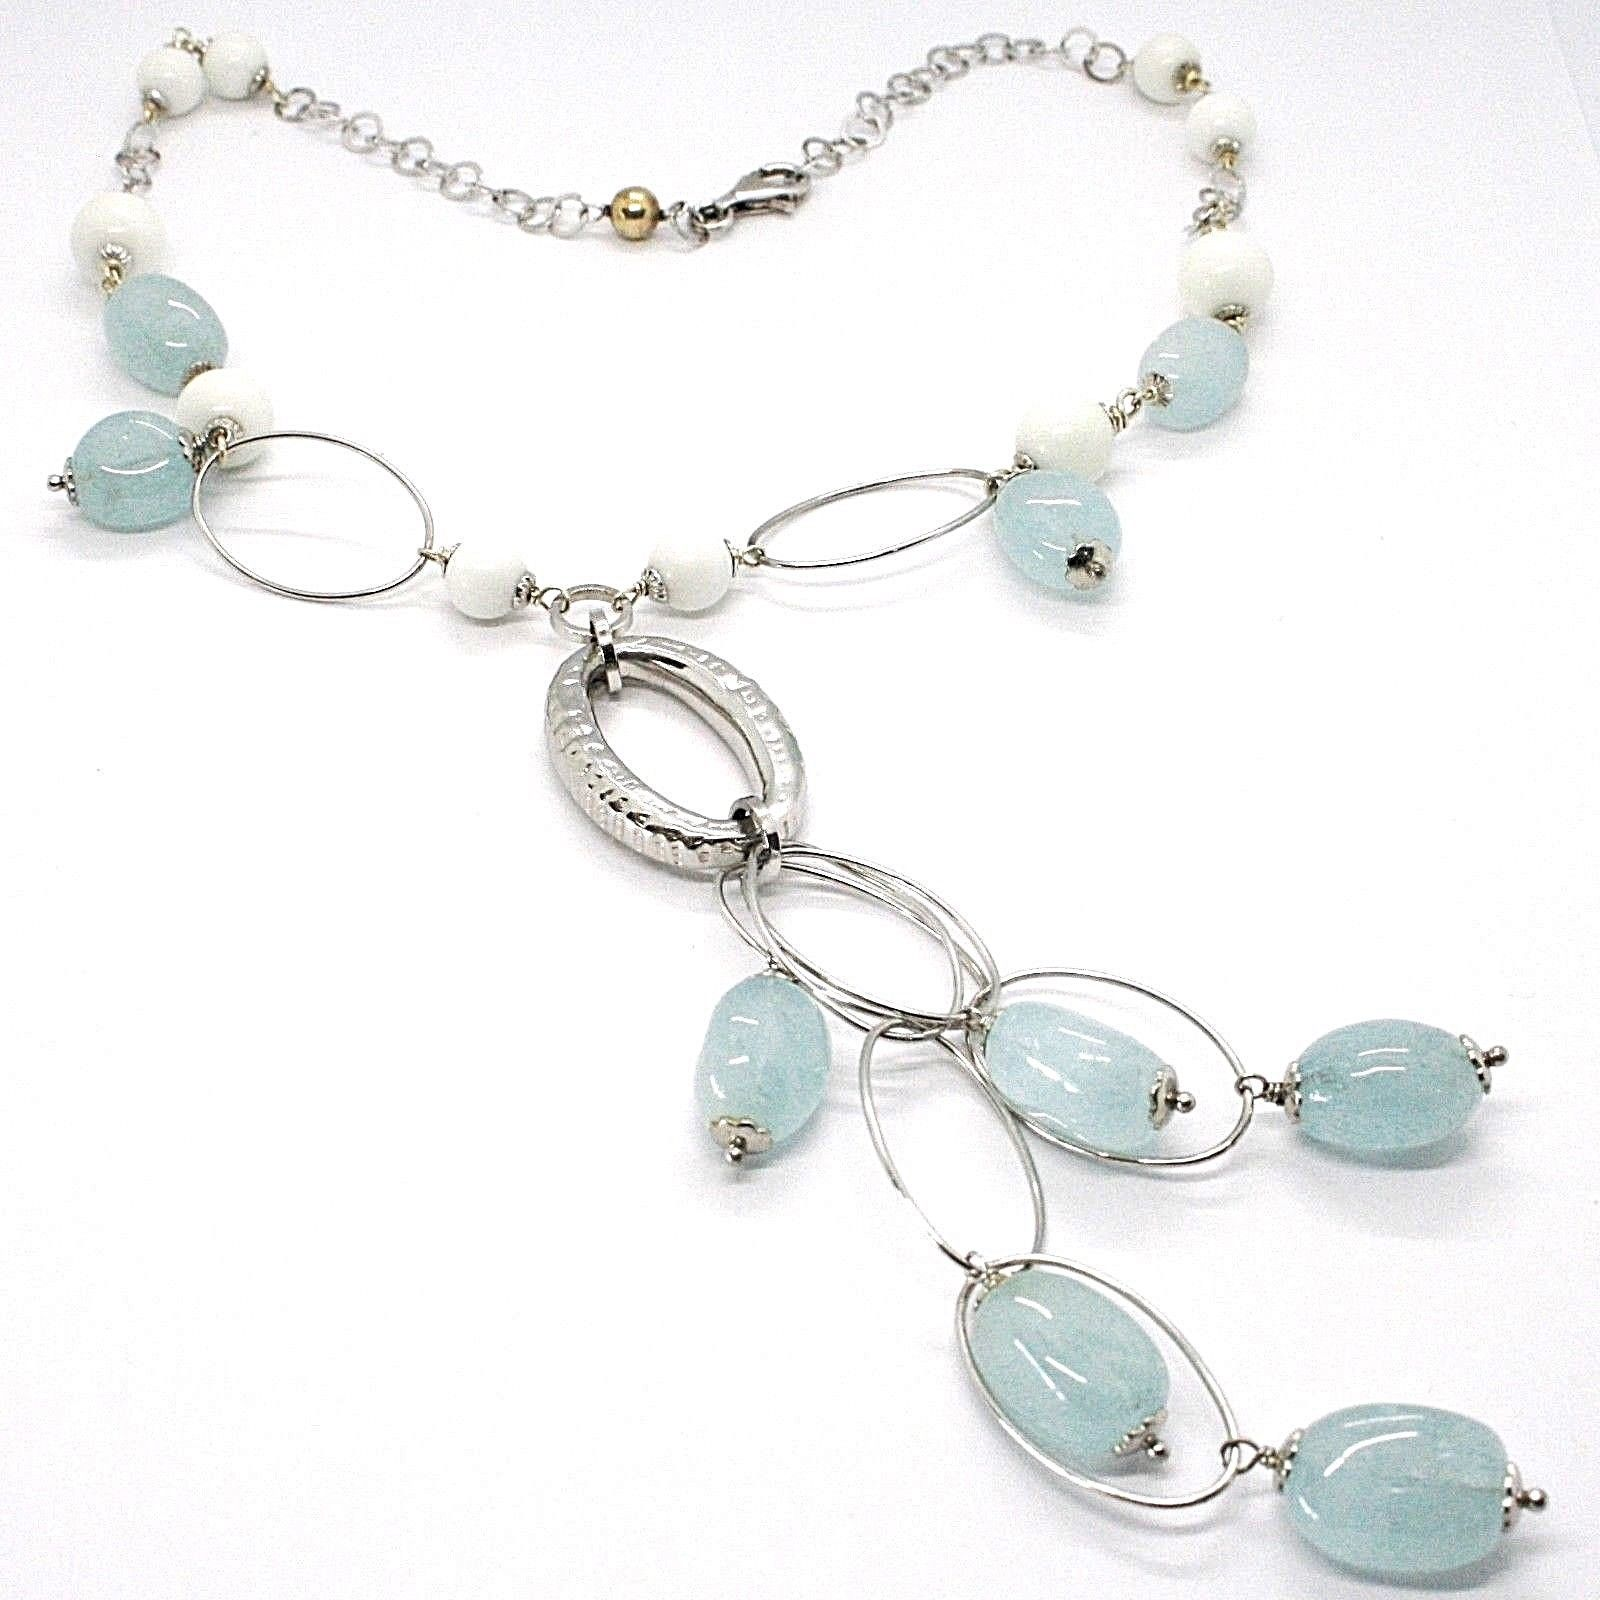 Silver necklace 925, Spheres Agate White, Aquamarine Drop Pendant, Oval